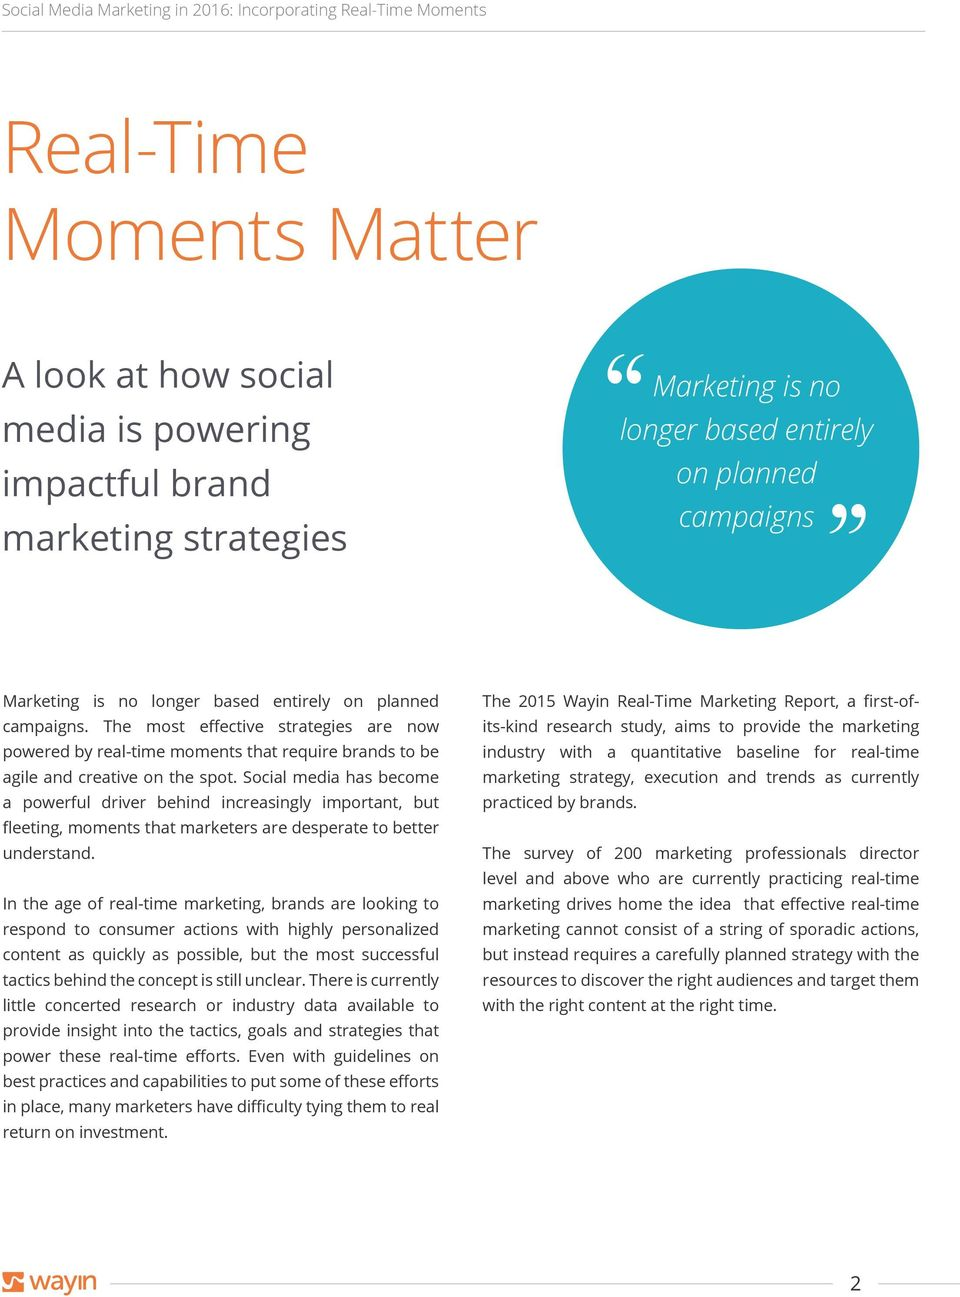 Social media has become a powerful driver behind increasingly important, but fleeting, moments that marketers are desperate to better understand.